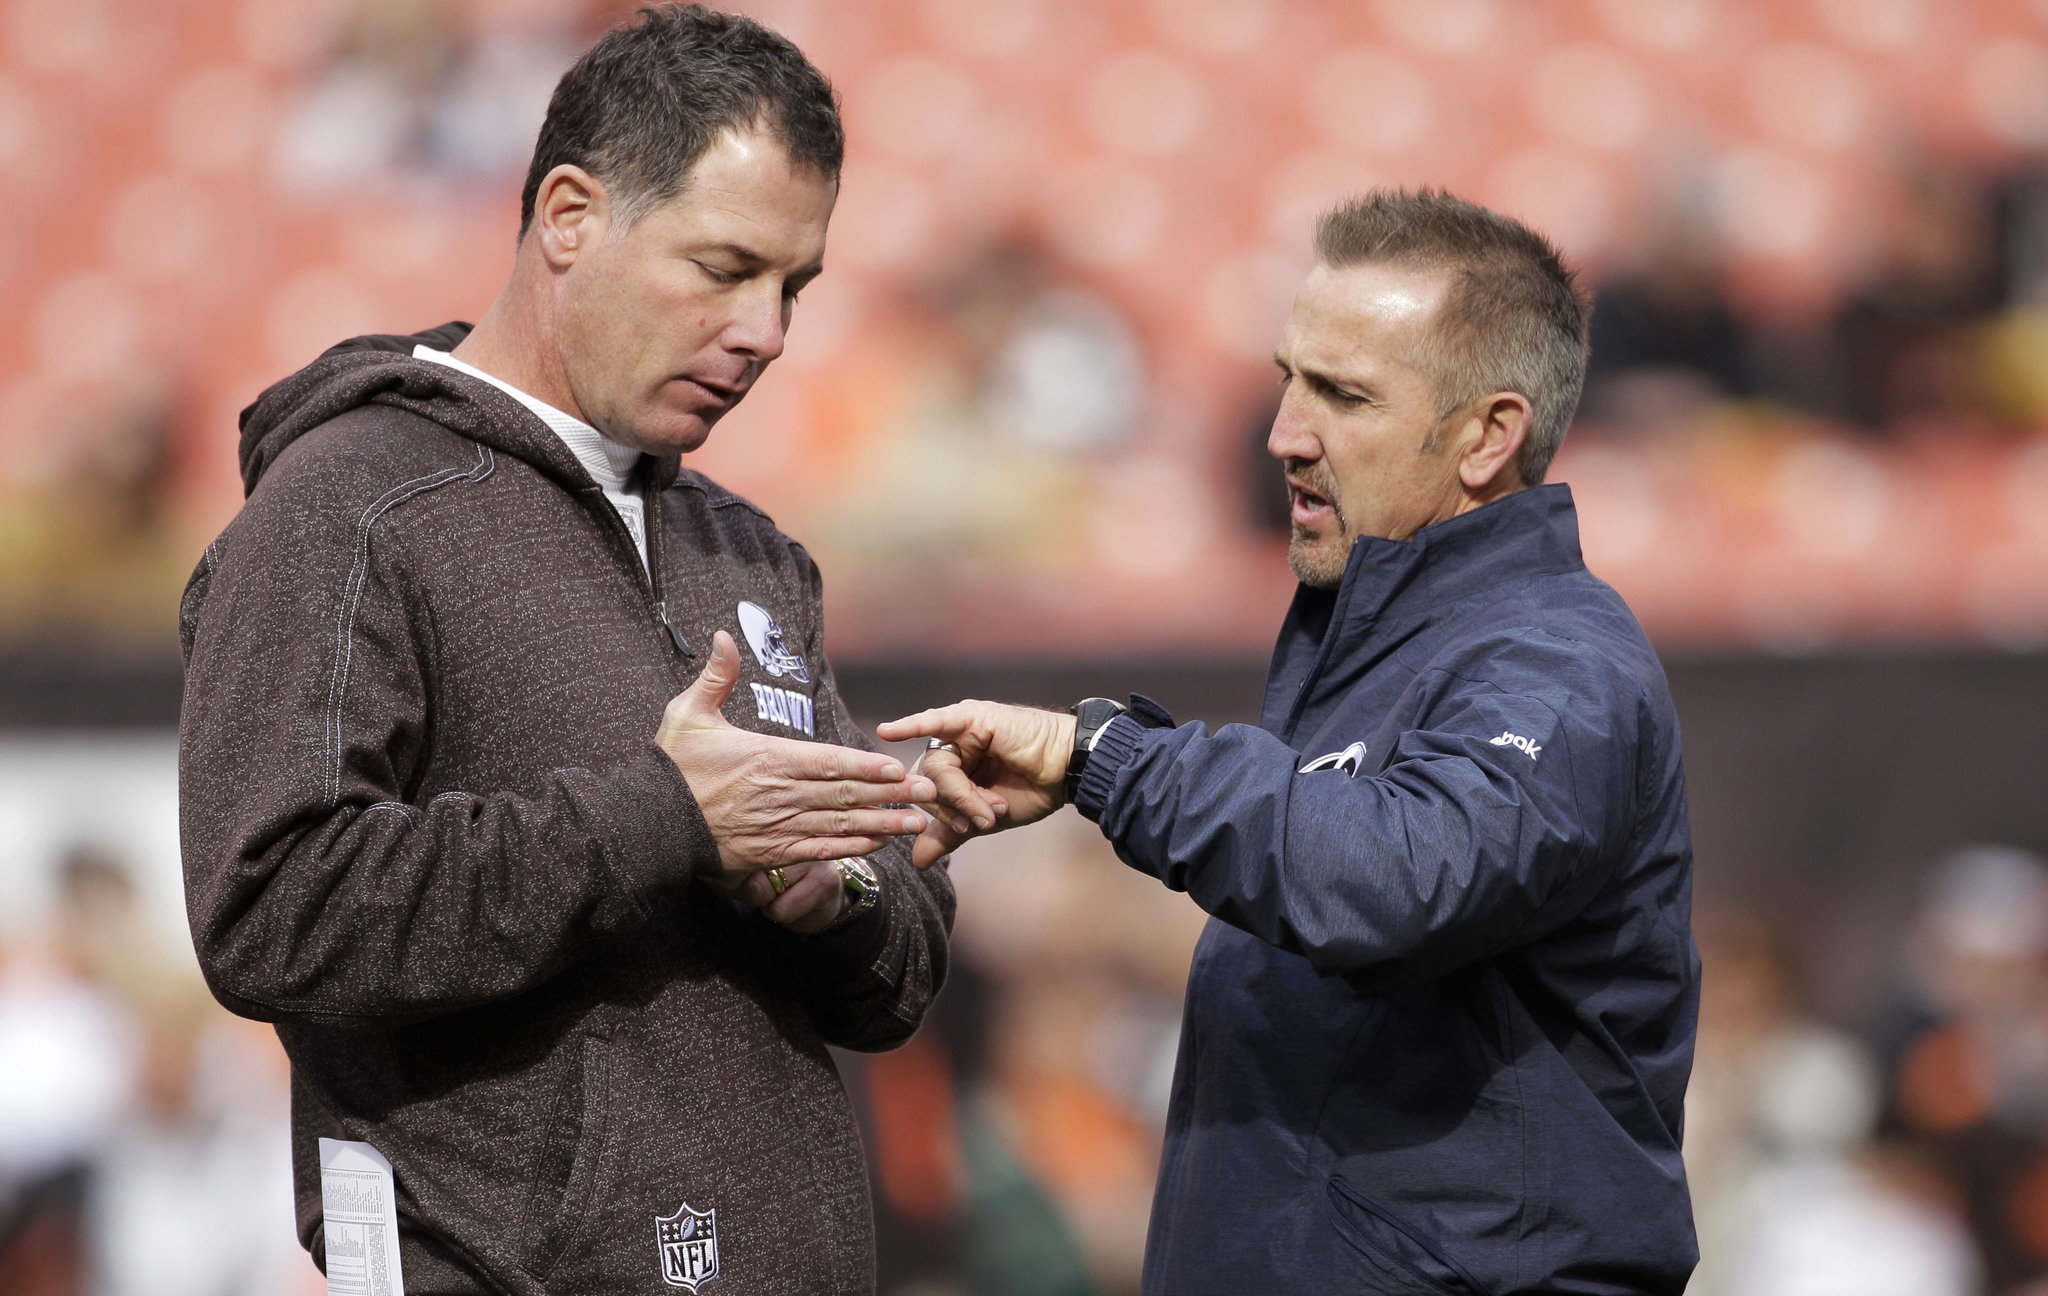 Giants Expected to Hire Vikings Offensive Coordinator Pat Shurmur As New Coach